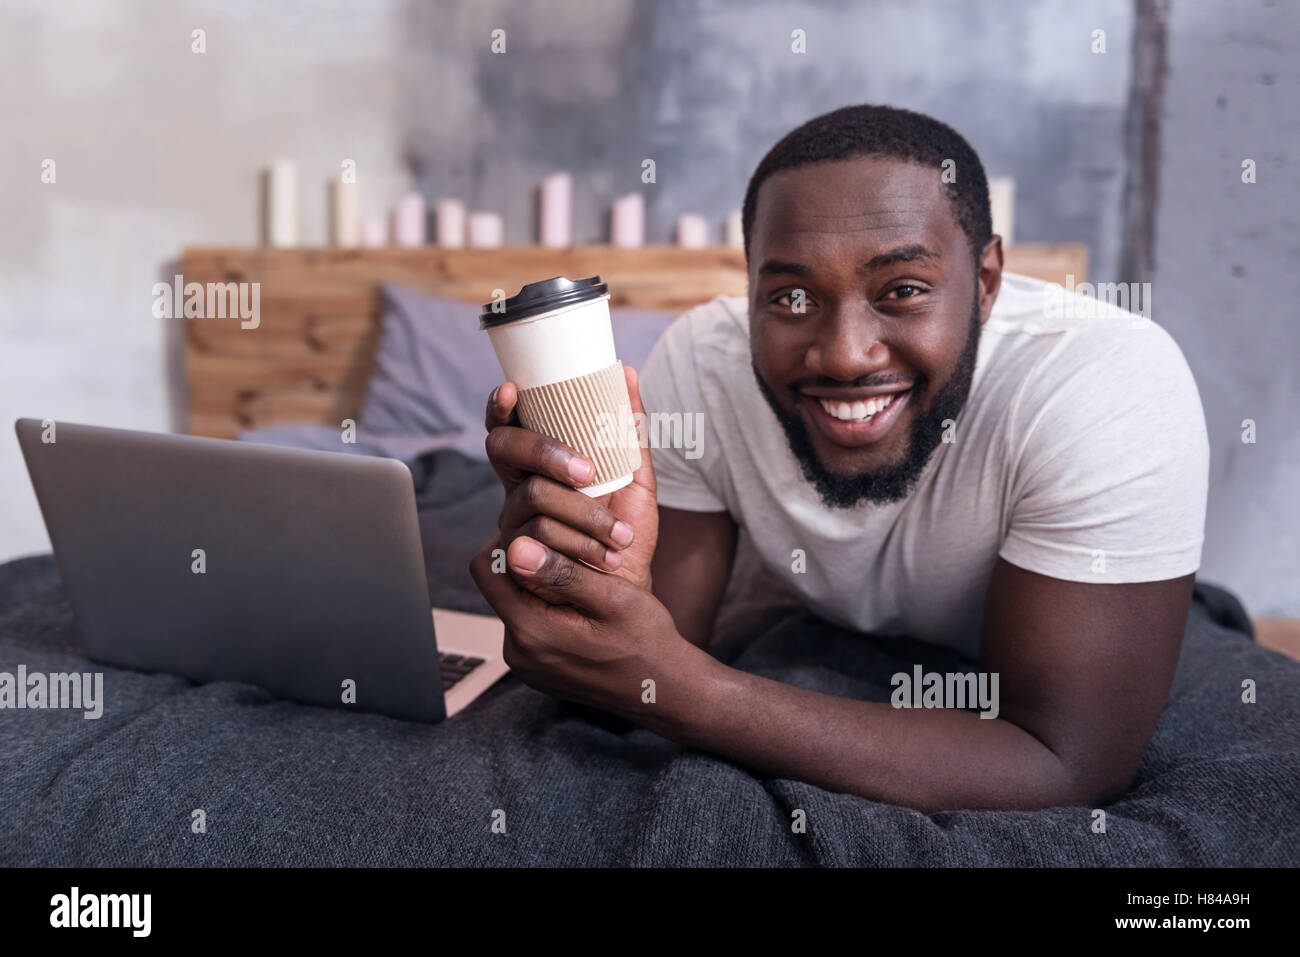 Joyful man holding cup of coffee in bedroom - Stock Image